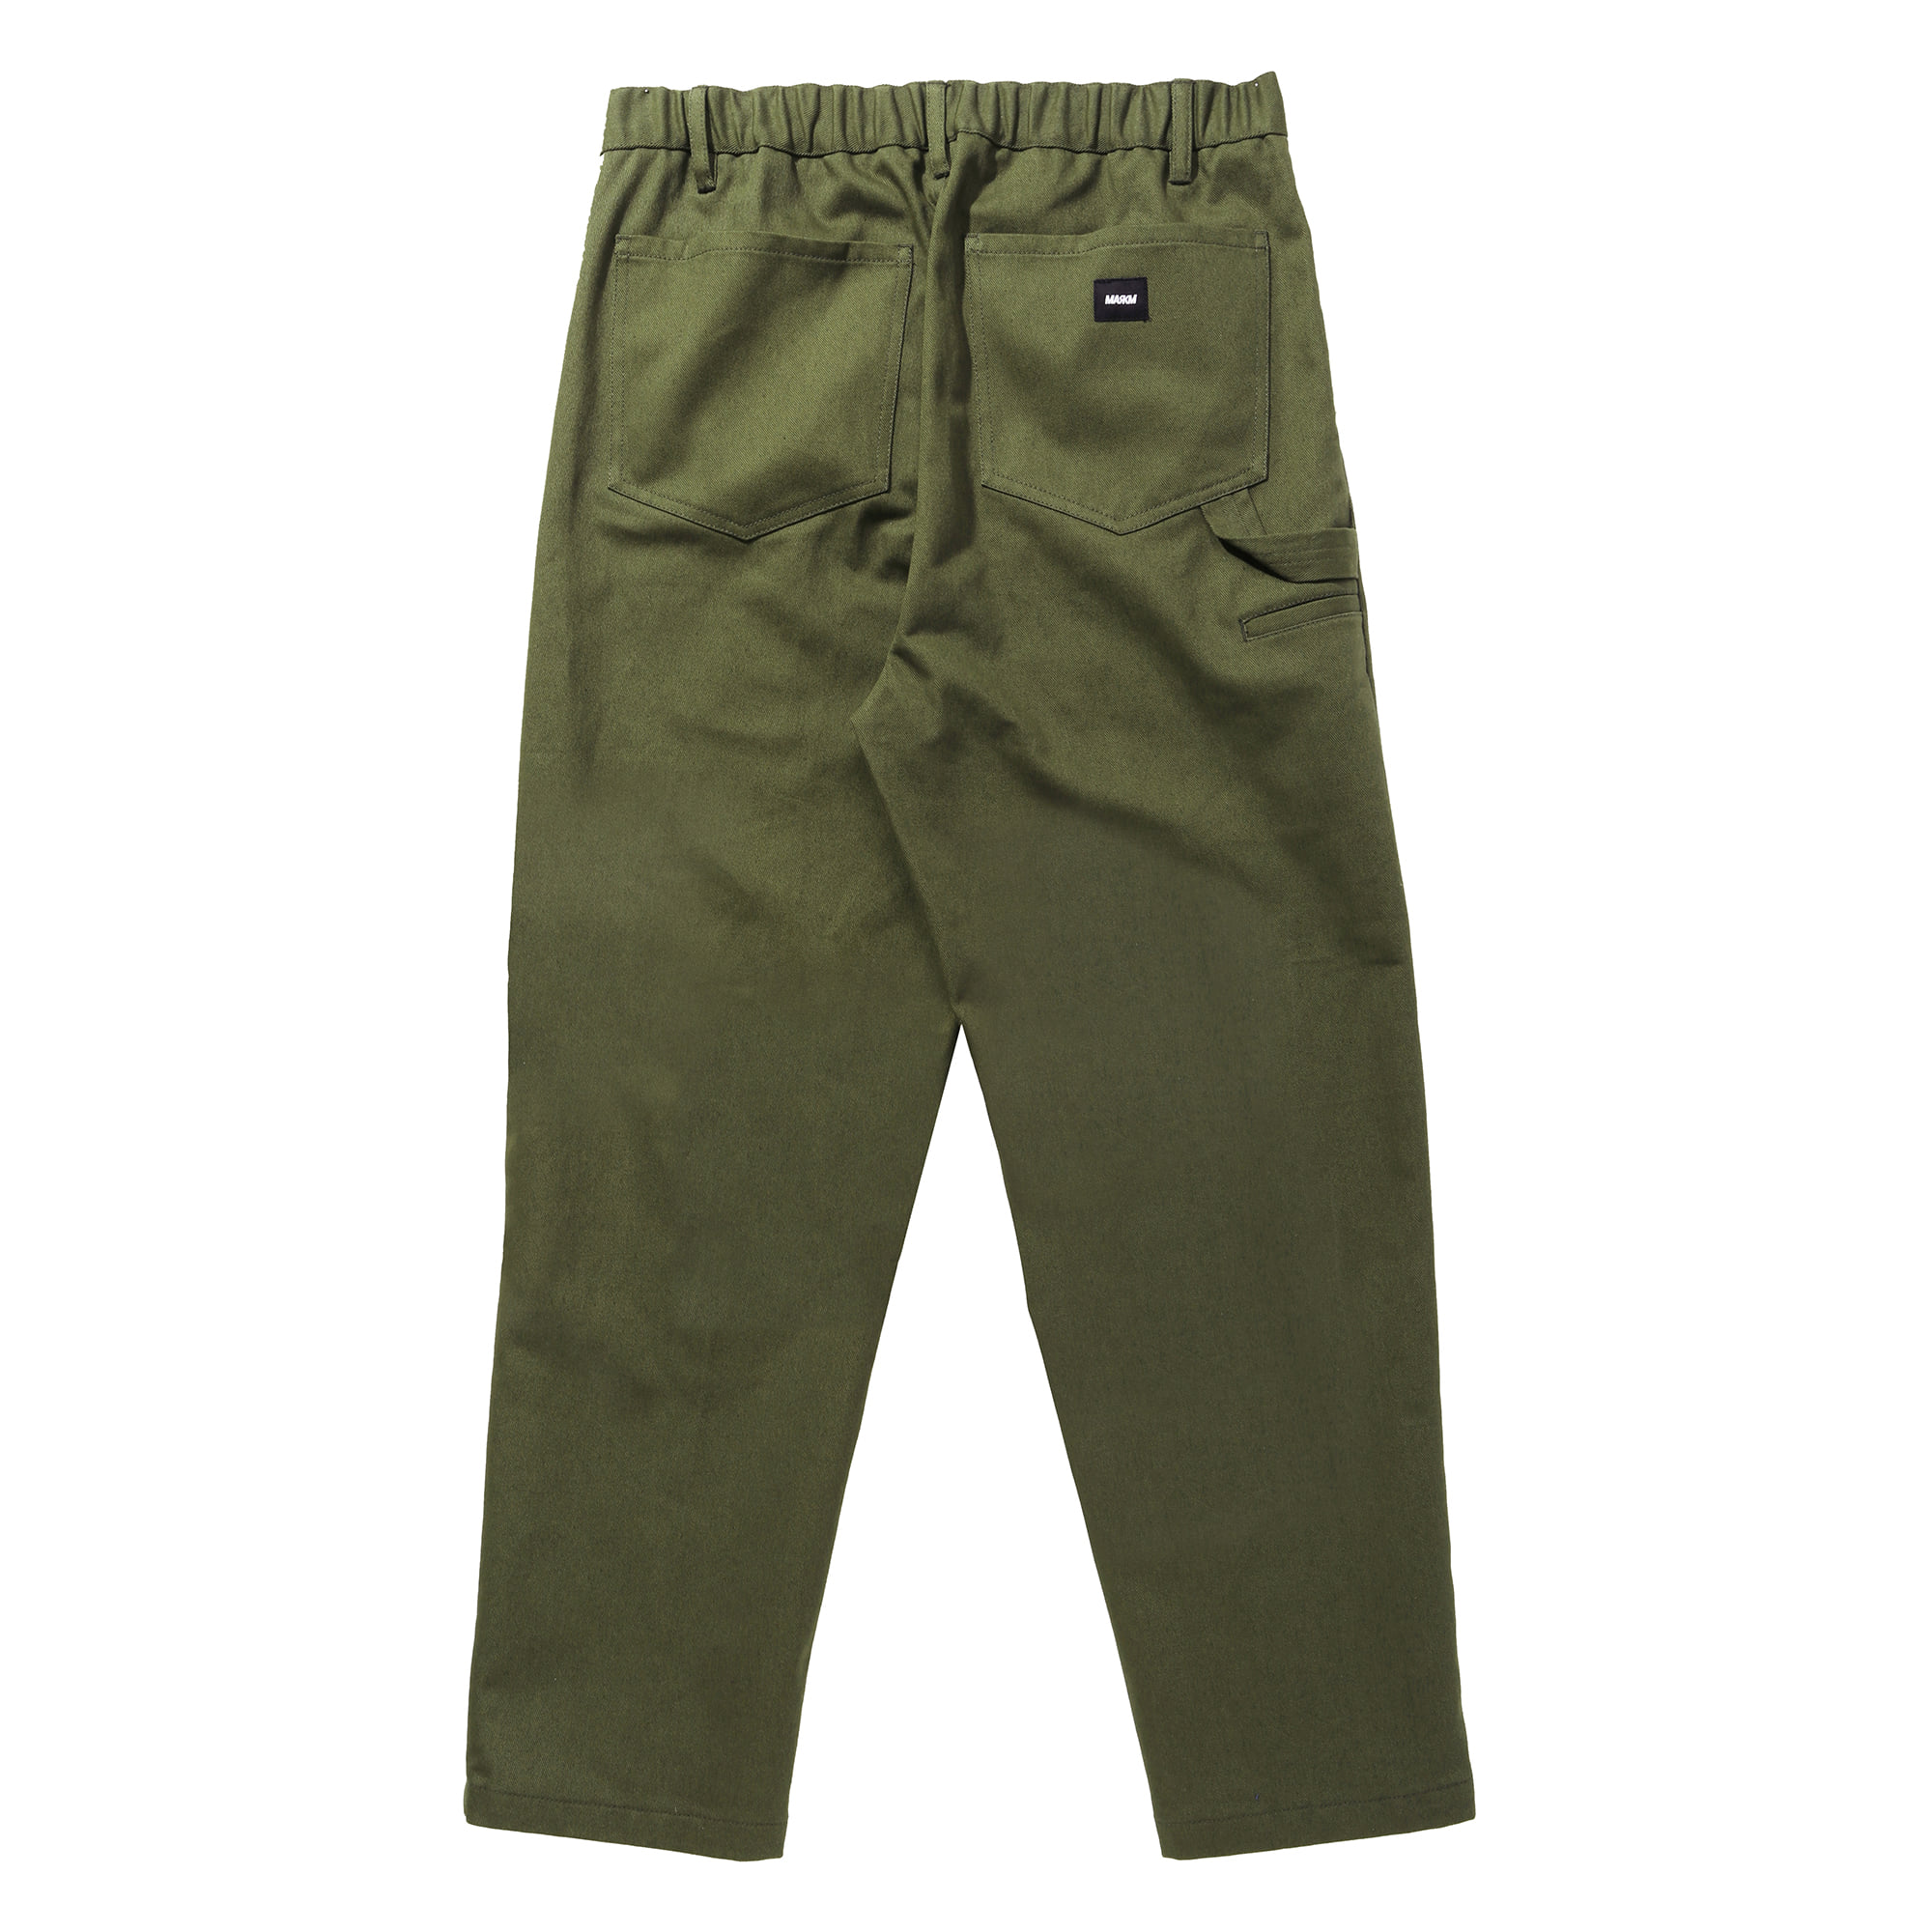 19FW MM Cotton Pants MYFAX4515